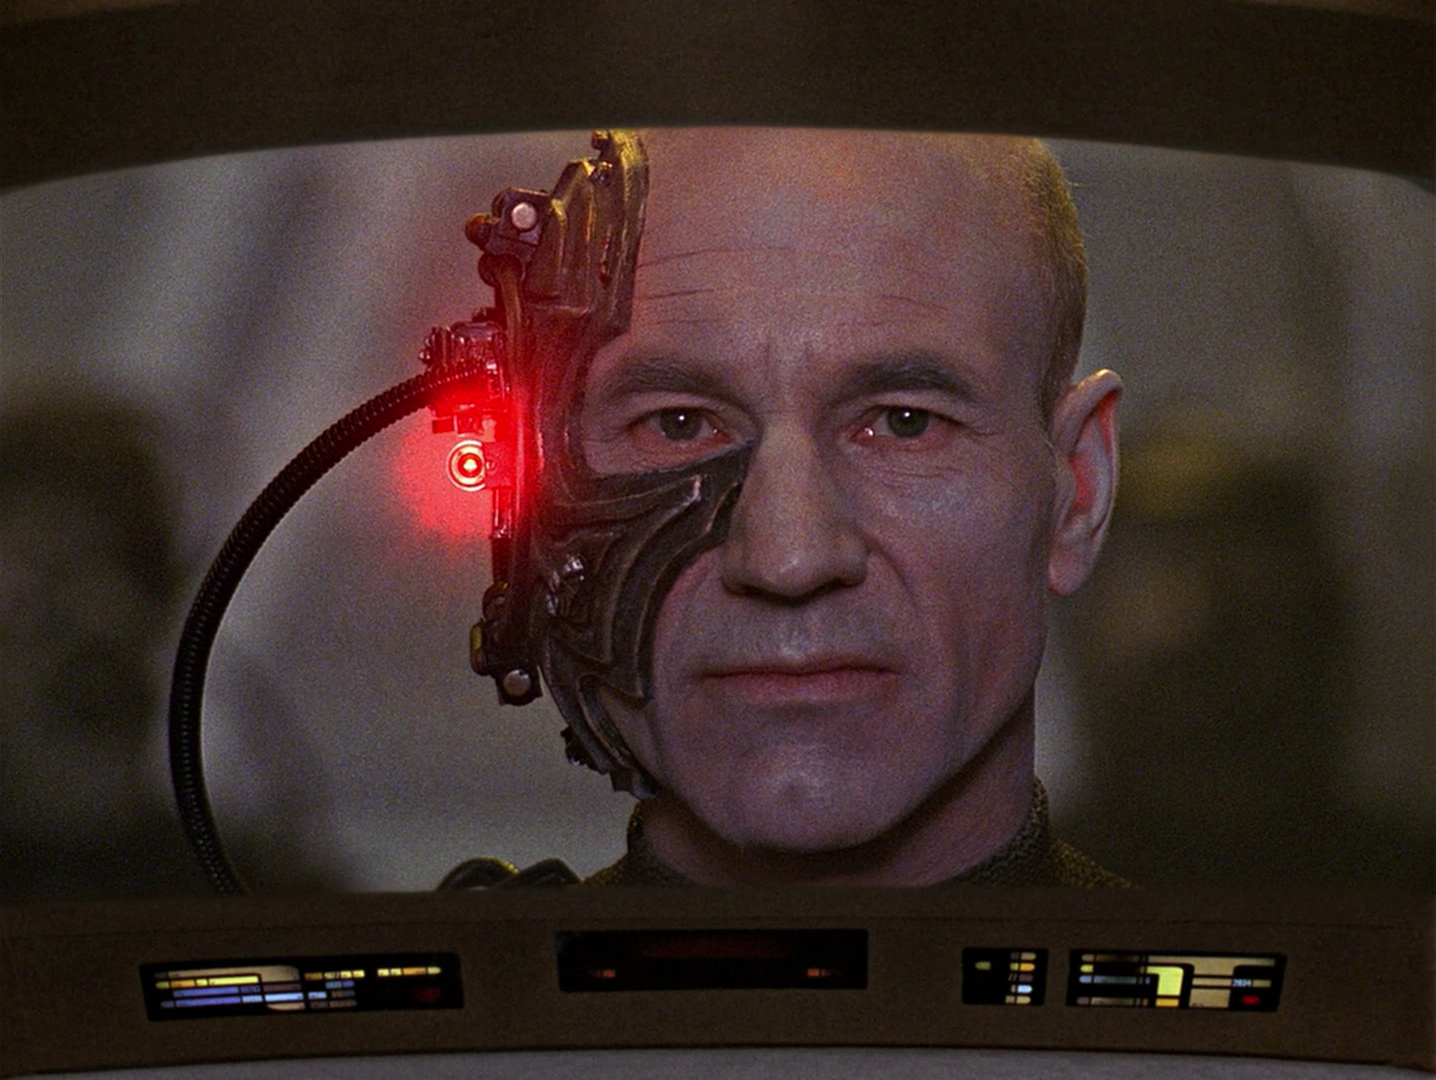 Locutus picture hosted on the Star Trek Memory Alpha wiki. No rights implied or reserved.